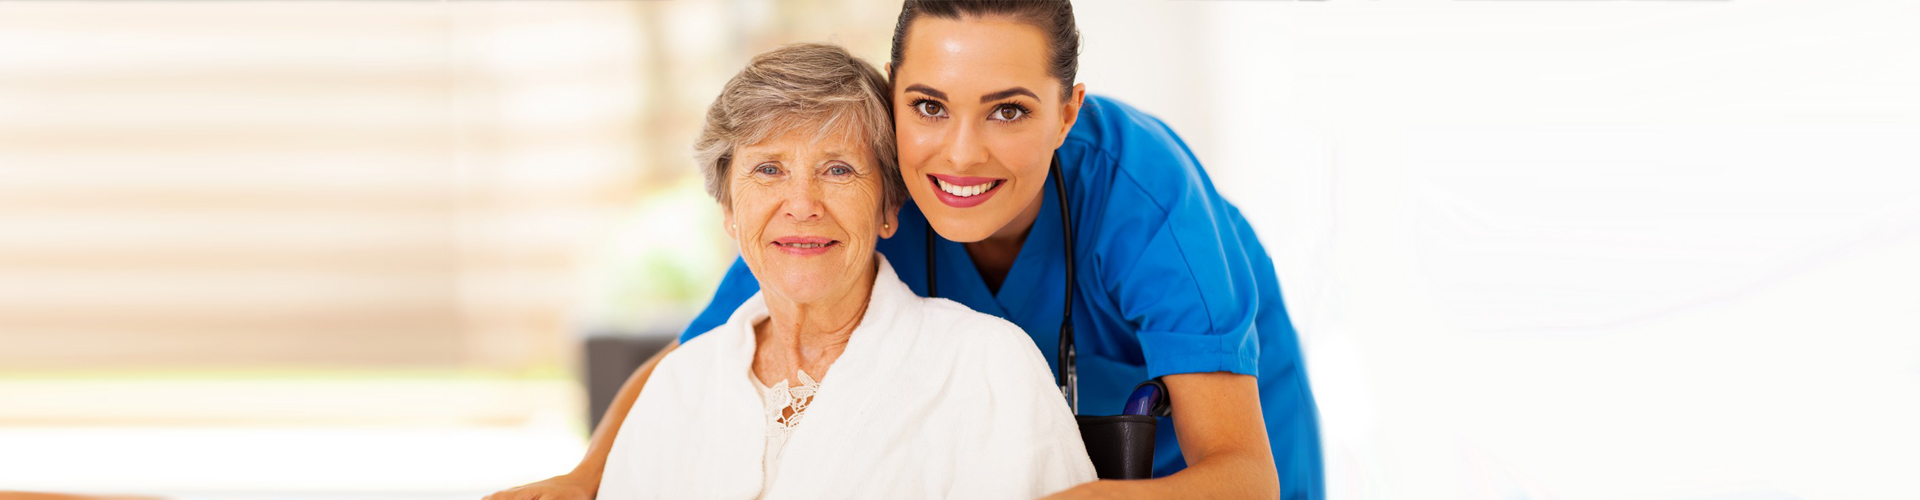 smiling nurse and her old woman patient